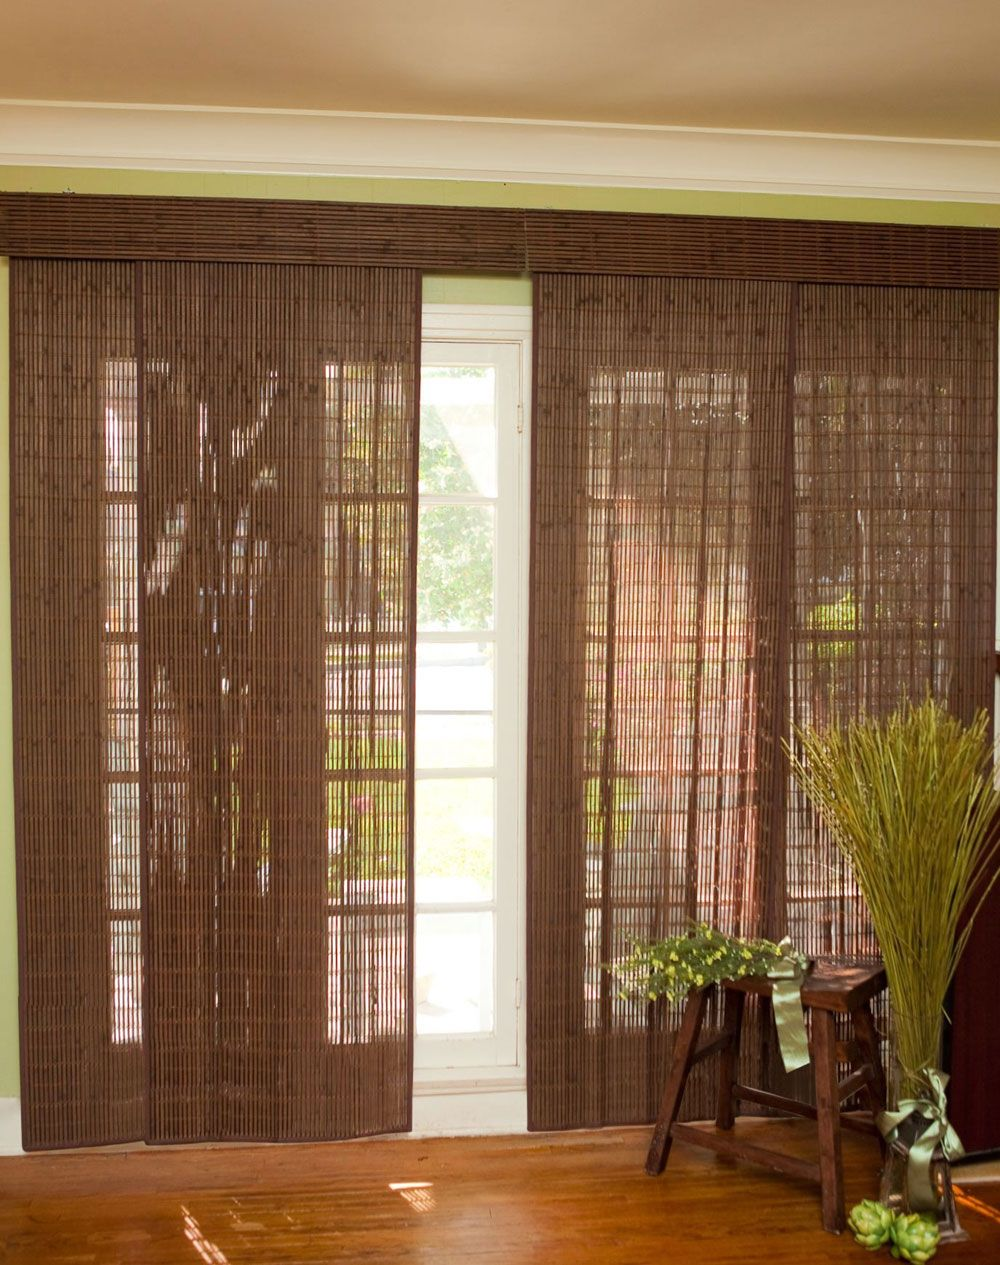 Blinds for sliding glass doors with decorative plant and chair